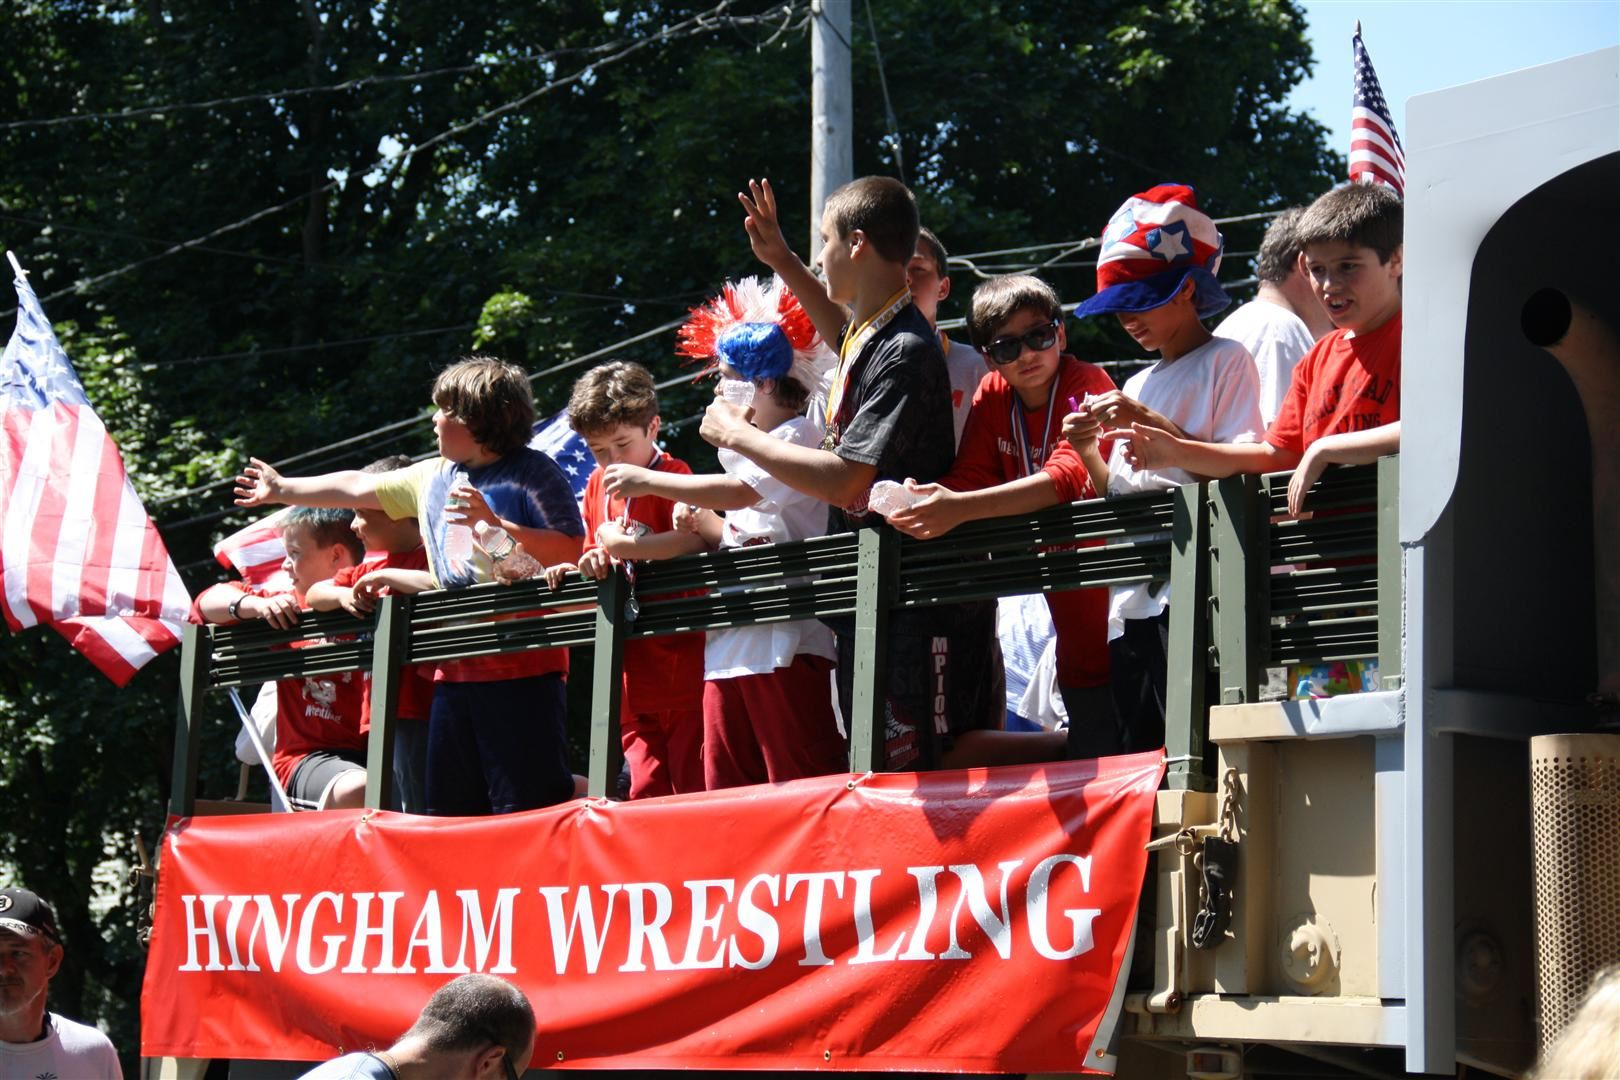 Hingham Wrestling Team